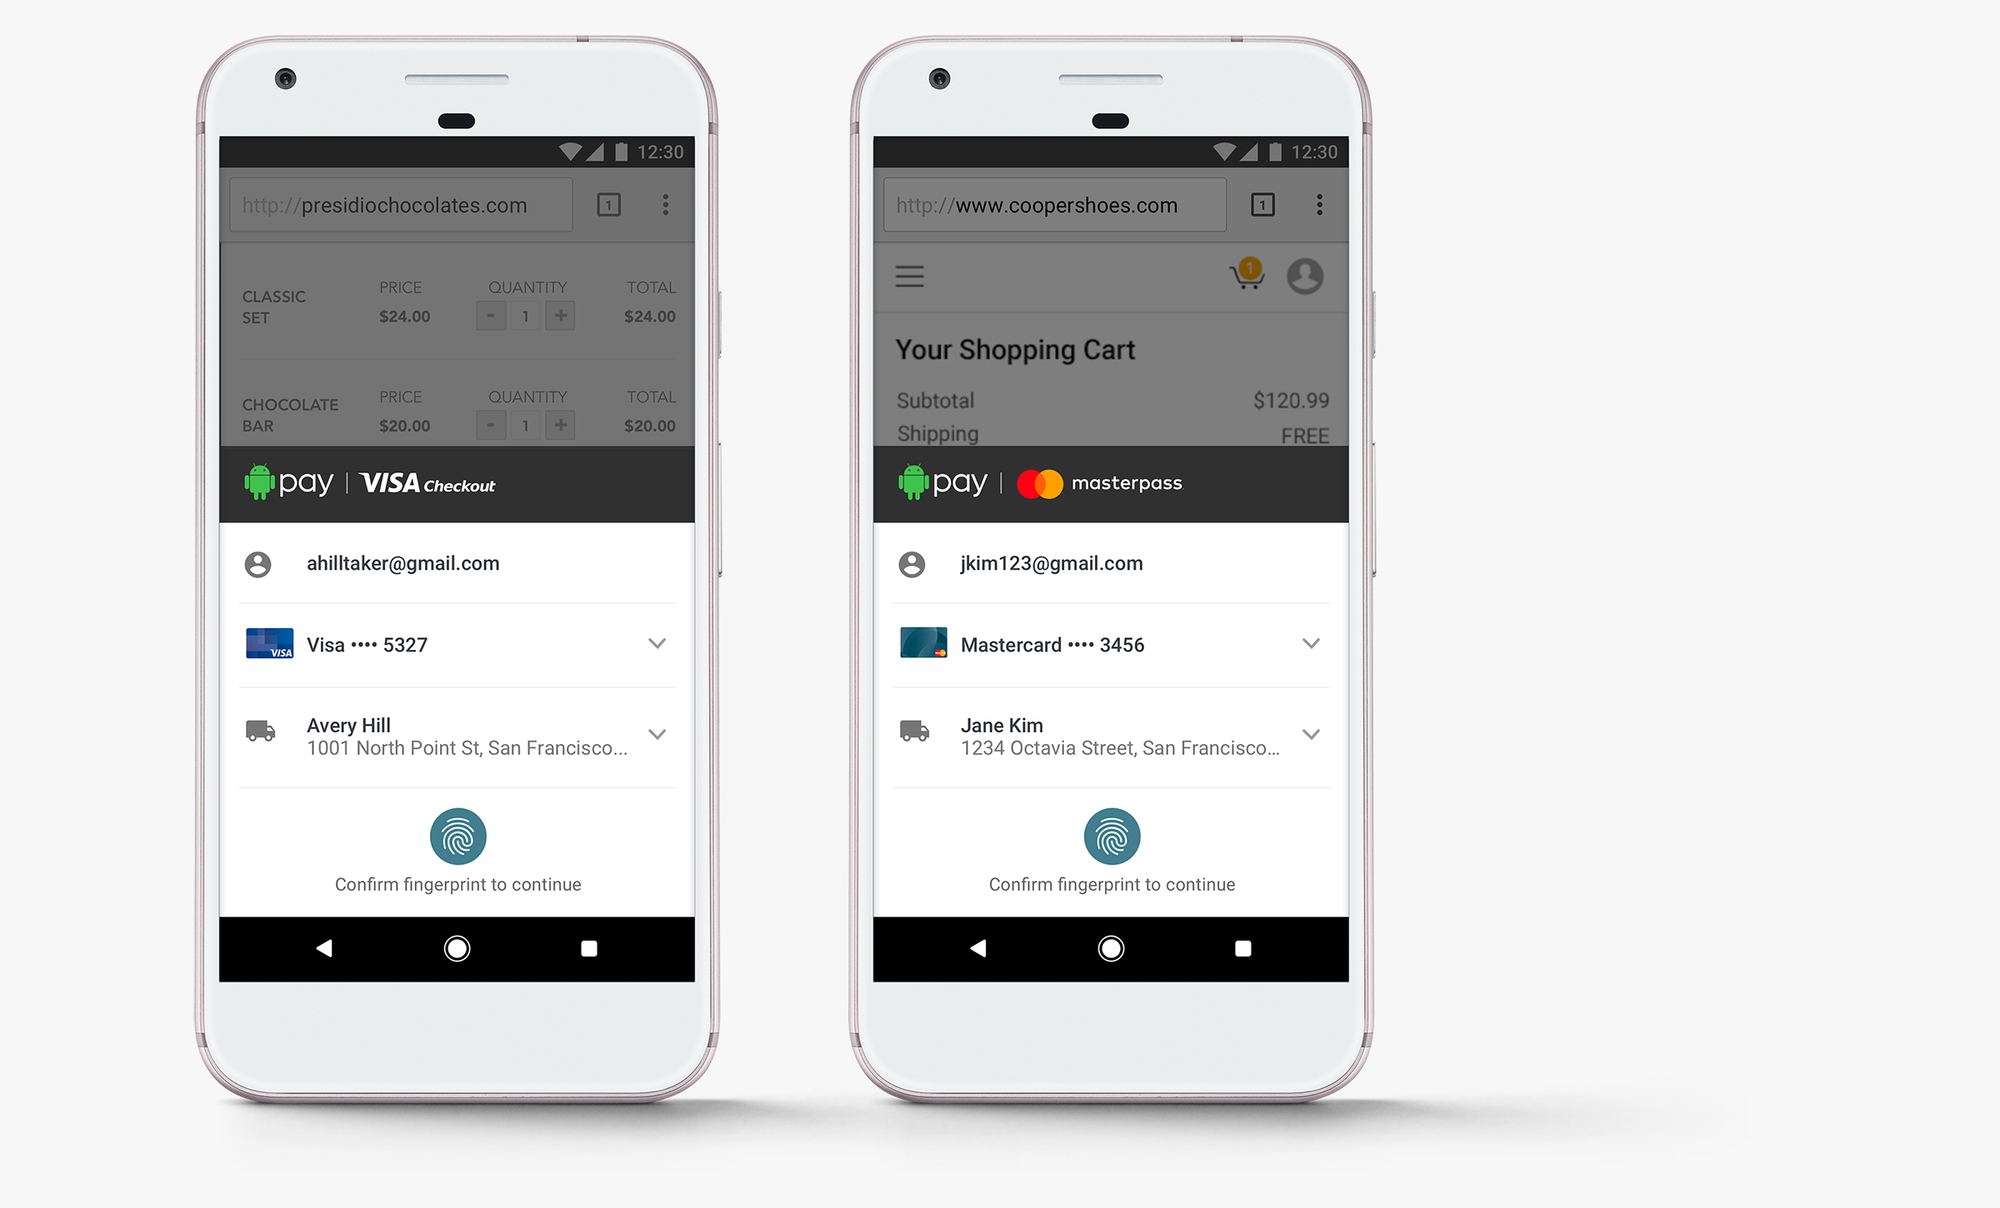 Android Pay with Visa Checkout and MasterCard Masterpass